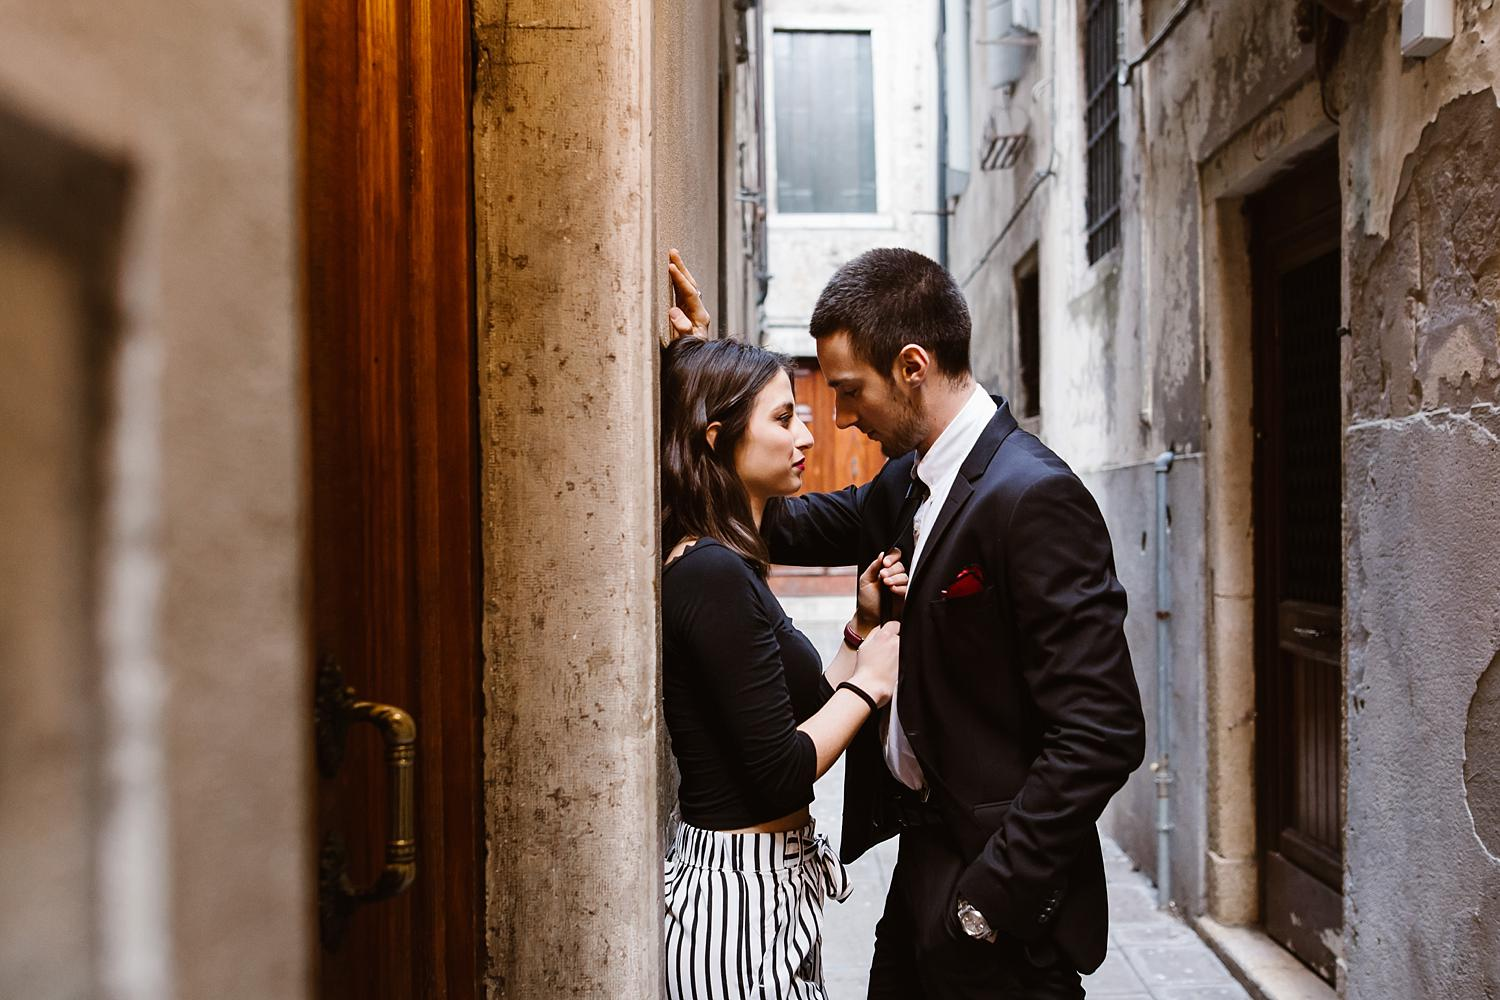 GL 25 - Giulia & Leonardo - An Intimate Shooting in Venice